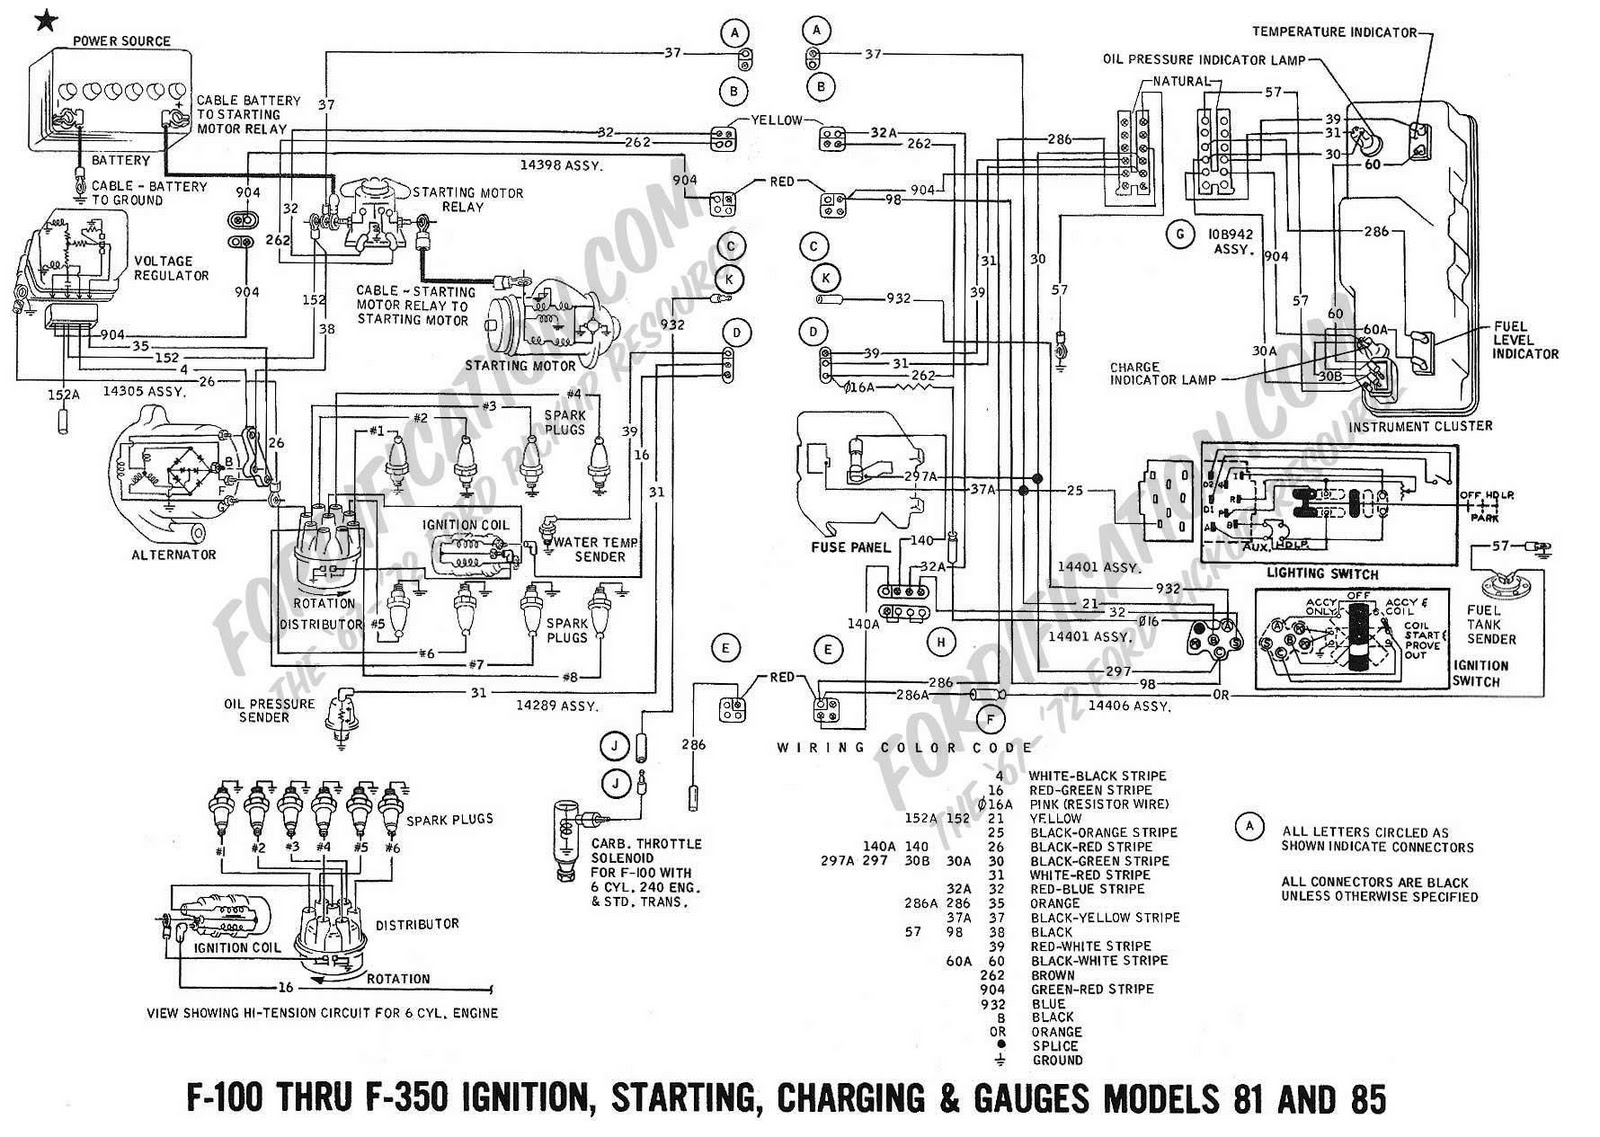 medium resolution of 1963 ford ignition coil wiring wiring diagram explained rh 8 11 corruptionincoal org 63 corvette wiring diagram 1963 chevy impala wiring diagram